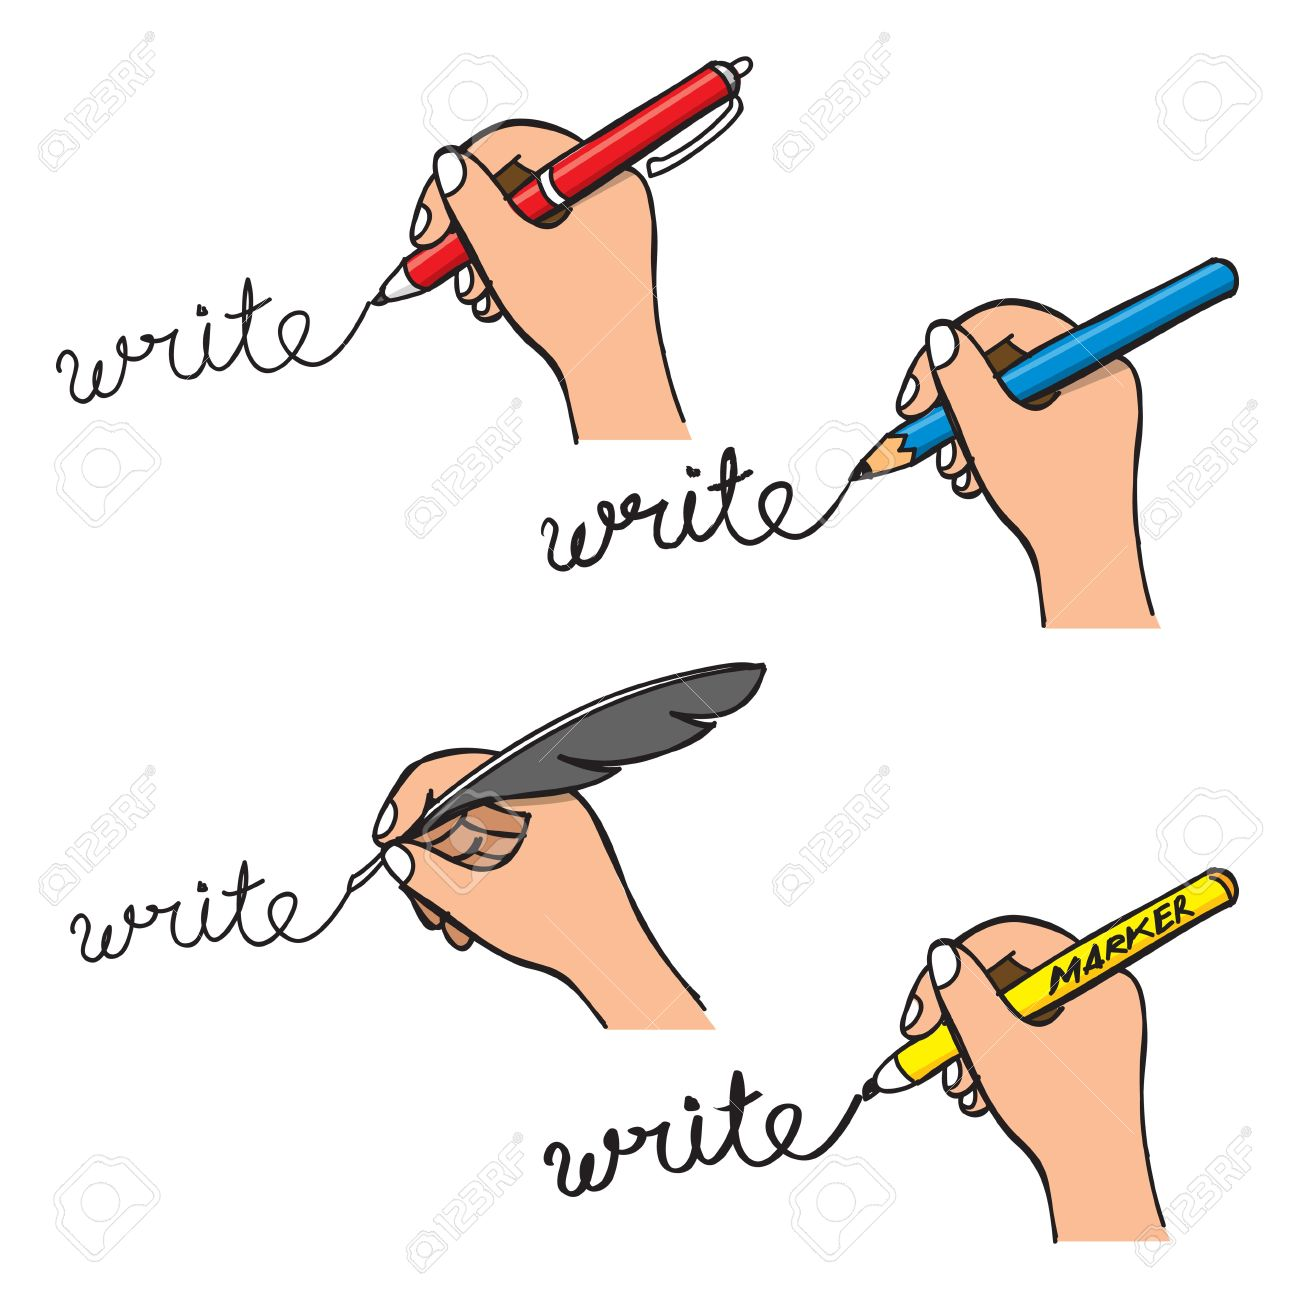 http://clipartstation.com/wp-content/uploads/2017/11/handwriting-clipart-4.jpg